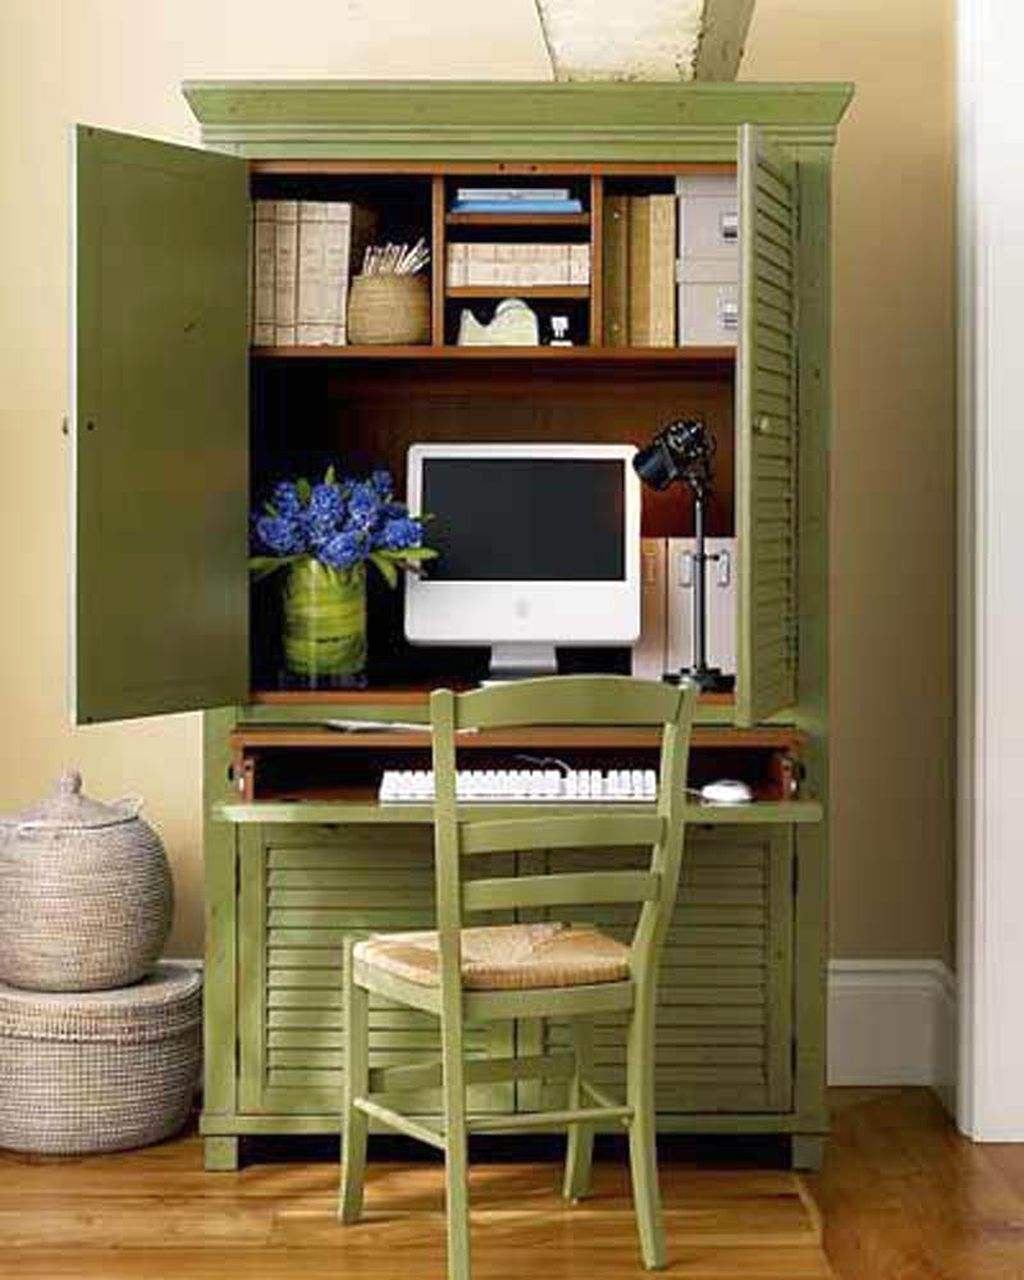 Green cupboard home office design ideas for small spaces - Design for small office space photos ...